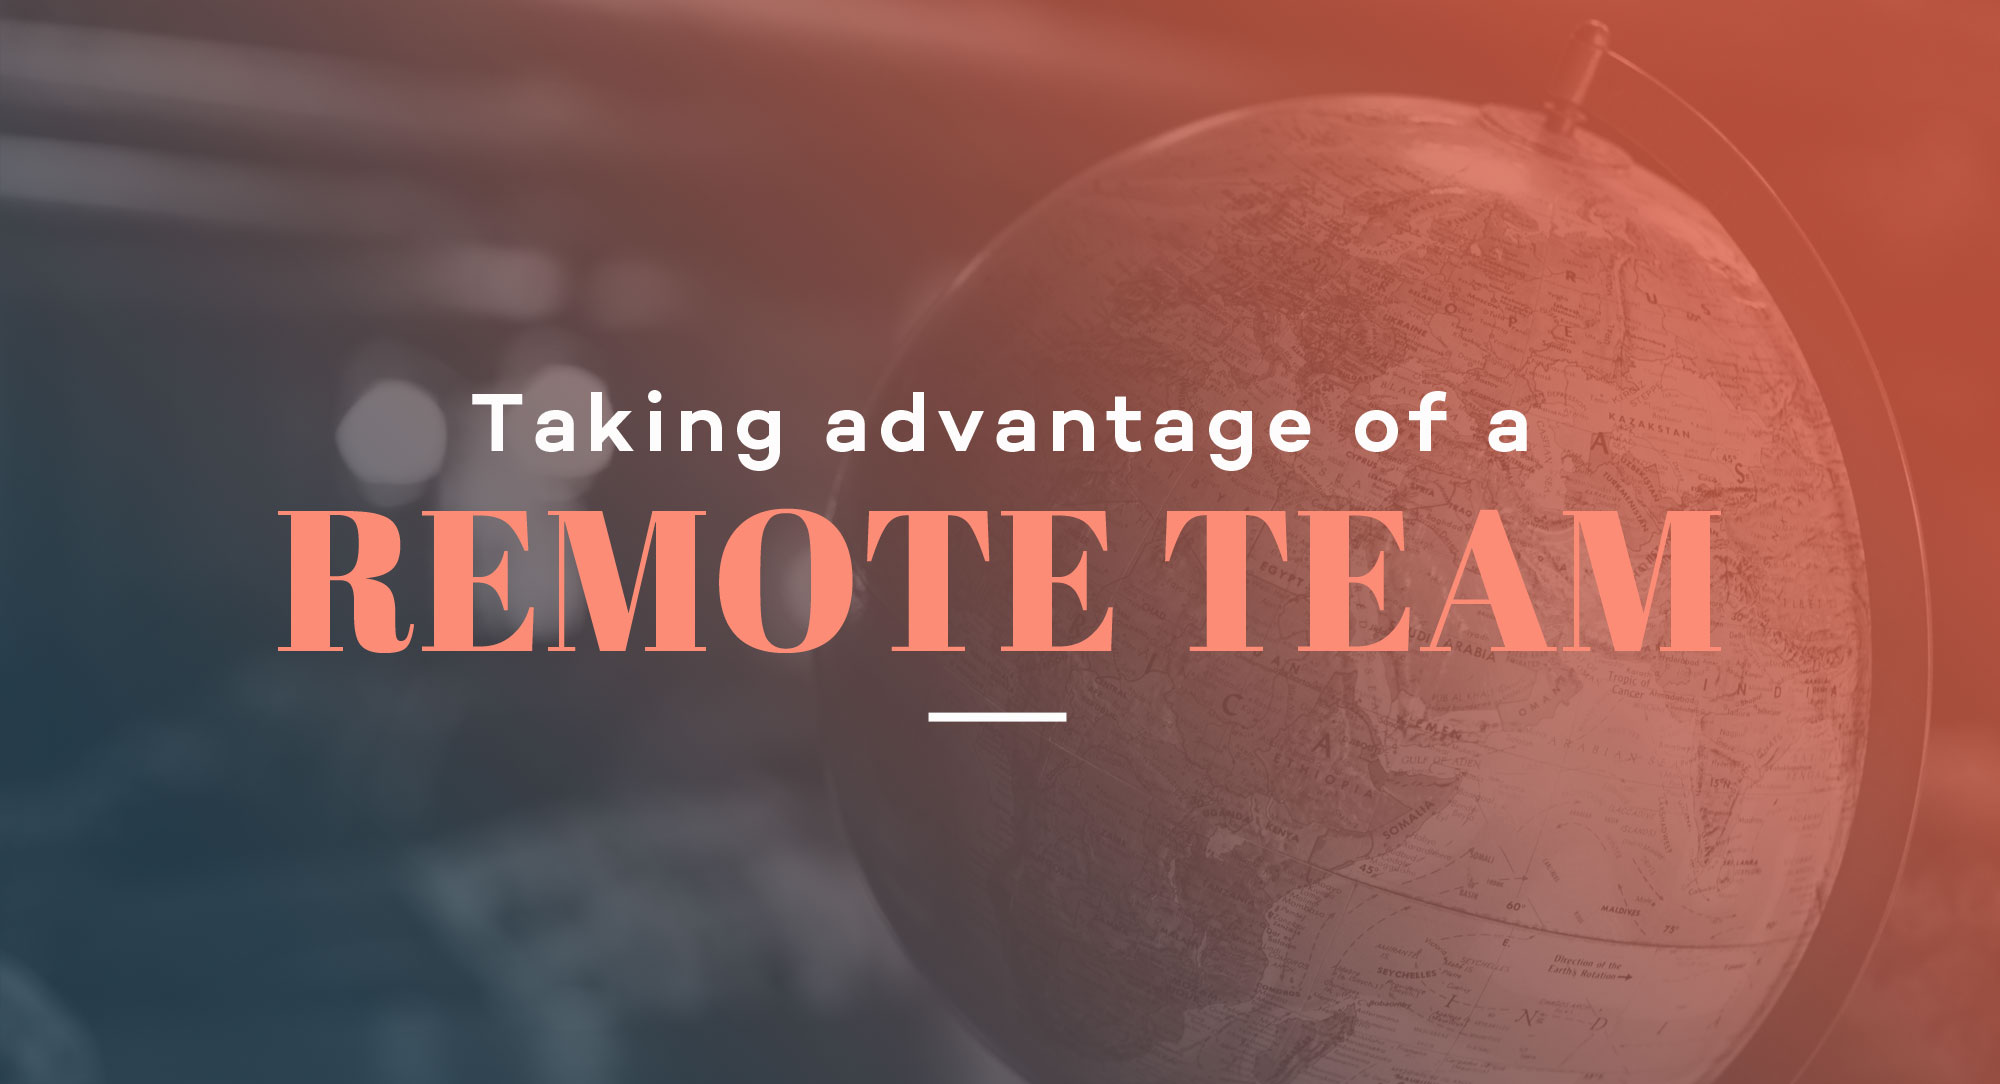 Taking-advantage-of-a-remote-team